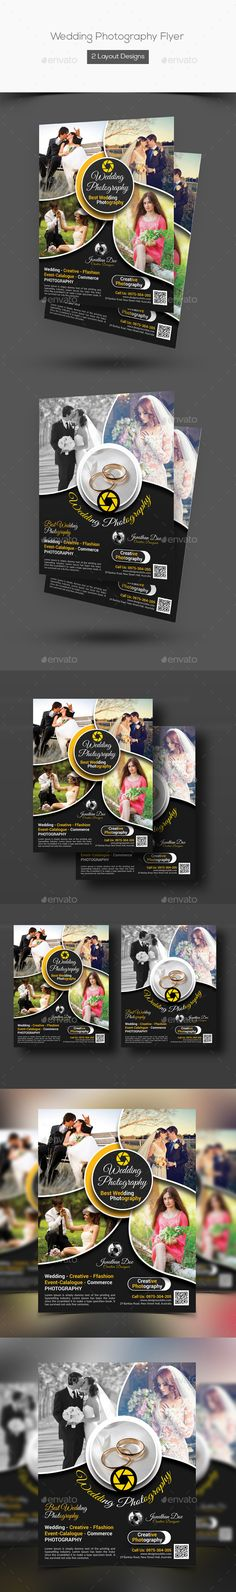 Wedding Photography Flyer Template PSD. Download here: http://graphicriver.net/item/wedding-photography-flyer/15166810?ref=ksioks